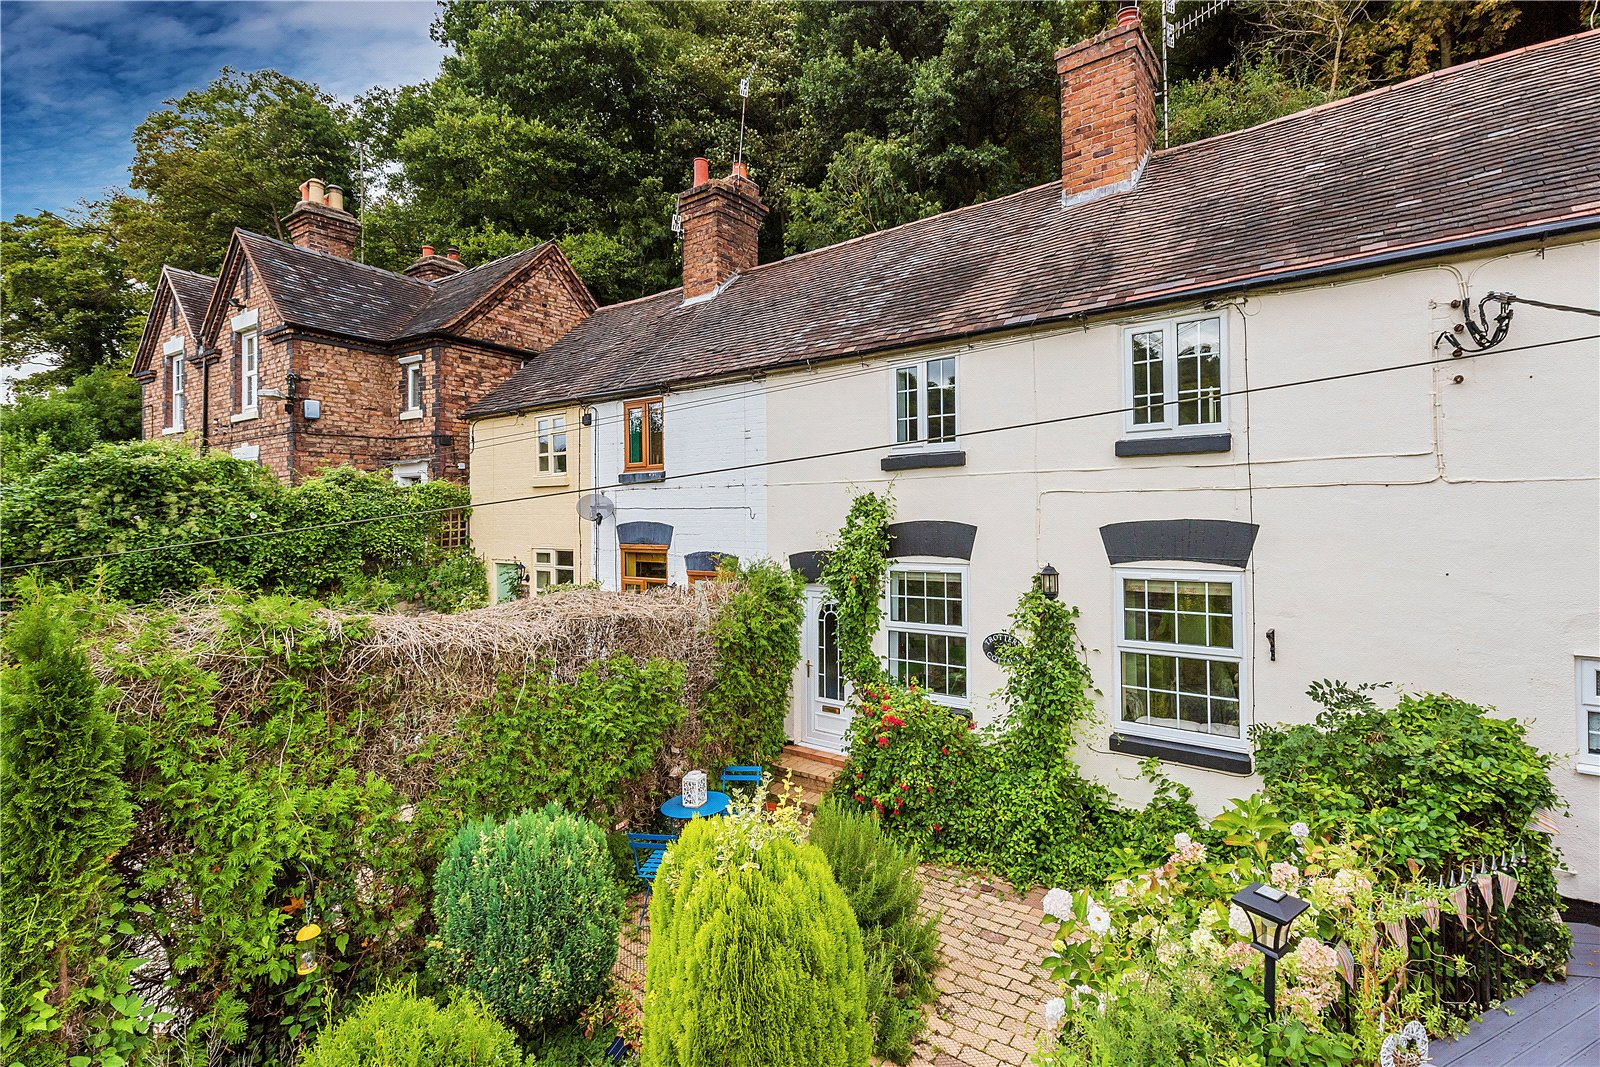 Trotters Cottage, 12-13 Church Road, Coalbrookdale, Telford, Shropshire, TF8